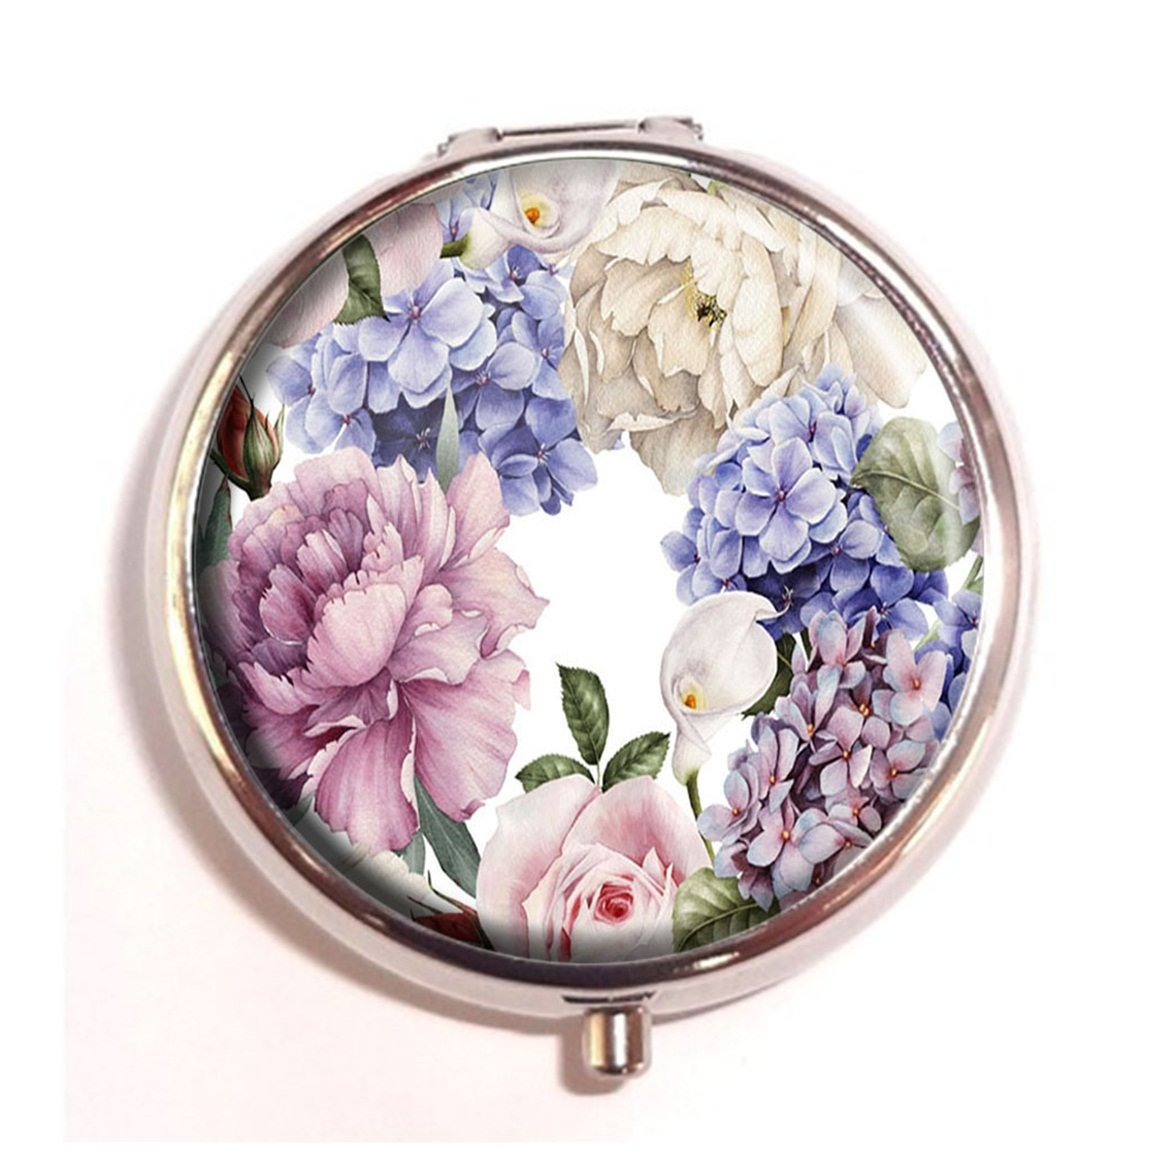 LCTCKP Floral with roses Custom Fashion Hot Round Pill Box Decorative Metal Western Medicine Tablet Container Box